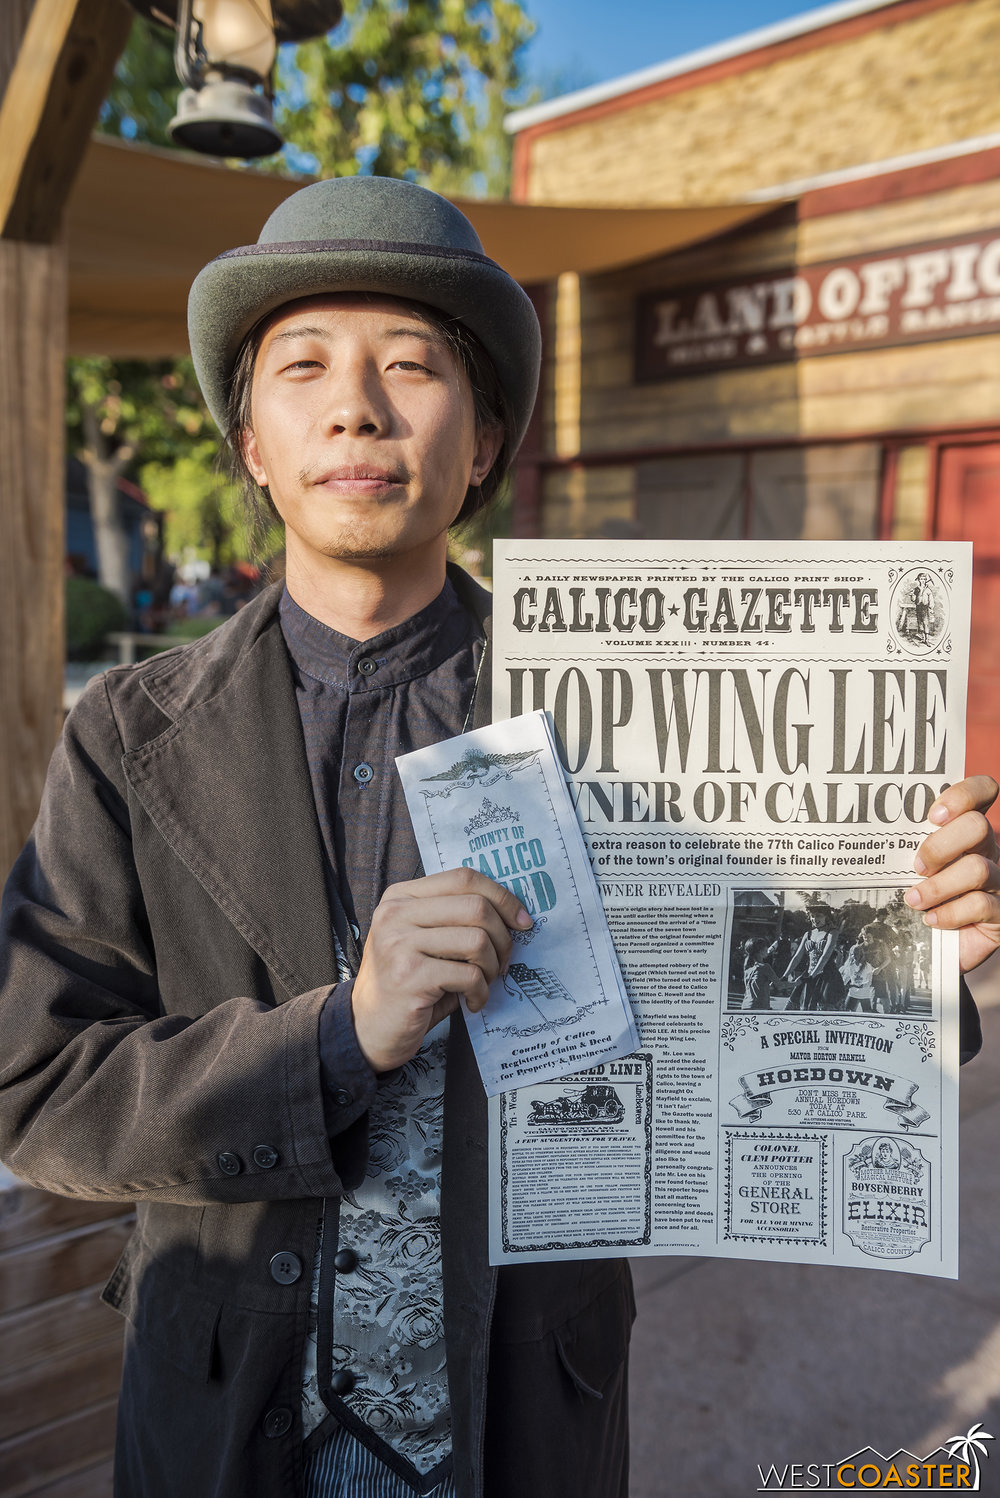 Meanwhile, the town is Hop Wing Lee's.    I, for one, welcome our new Chinese overlord(s)… to Calico.